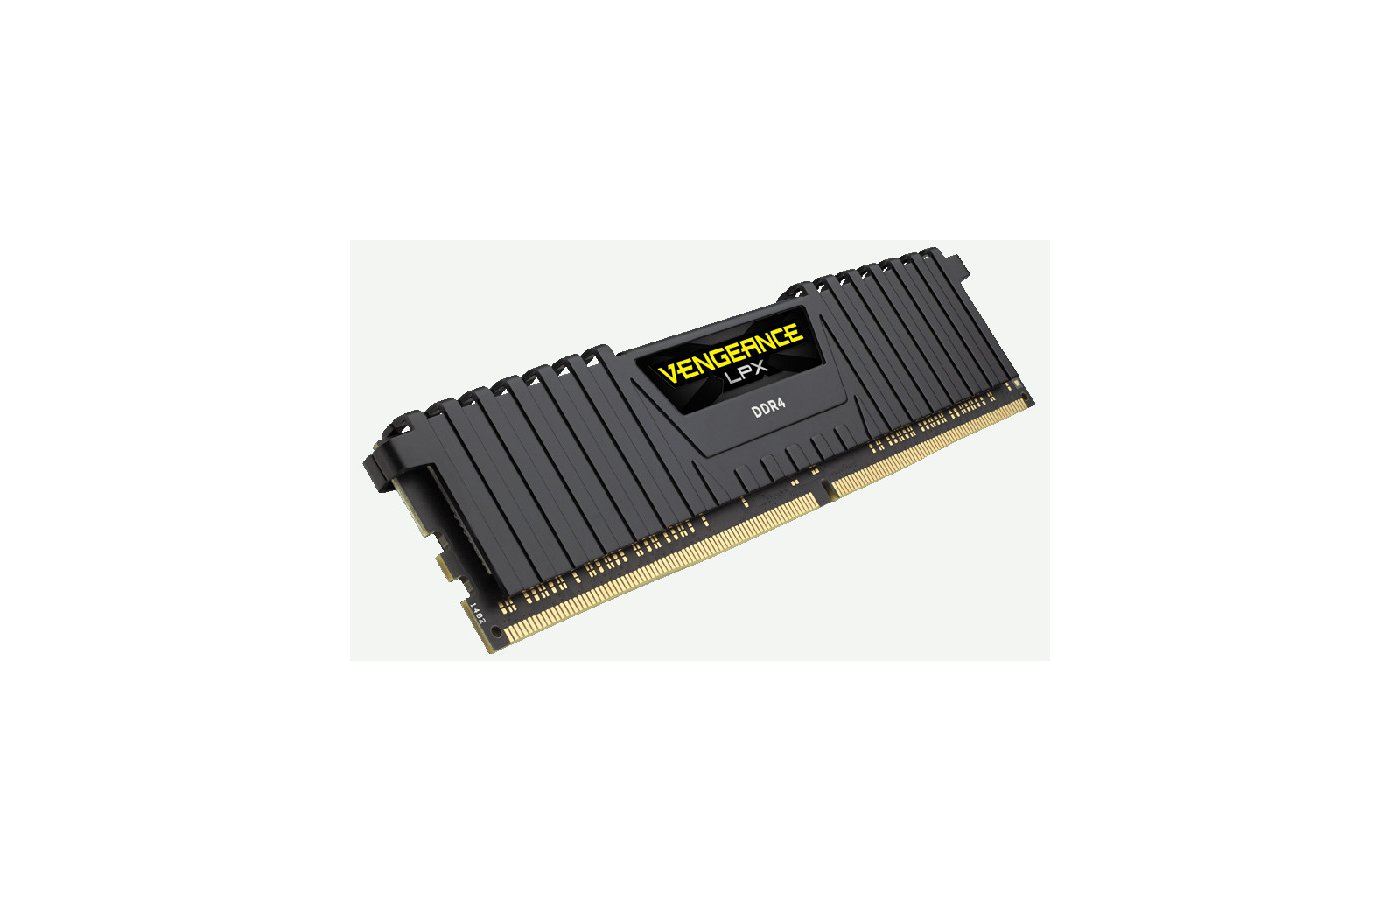 Оперативная память Corsair CMK32GX4M2A2400C16 RTL PC4-19200 DDR4 2x16Gb 2400MHz CL16 DIMM